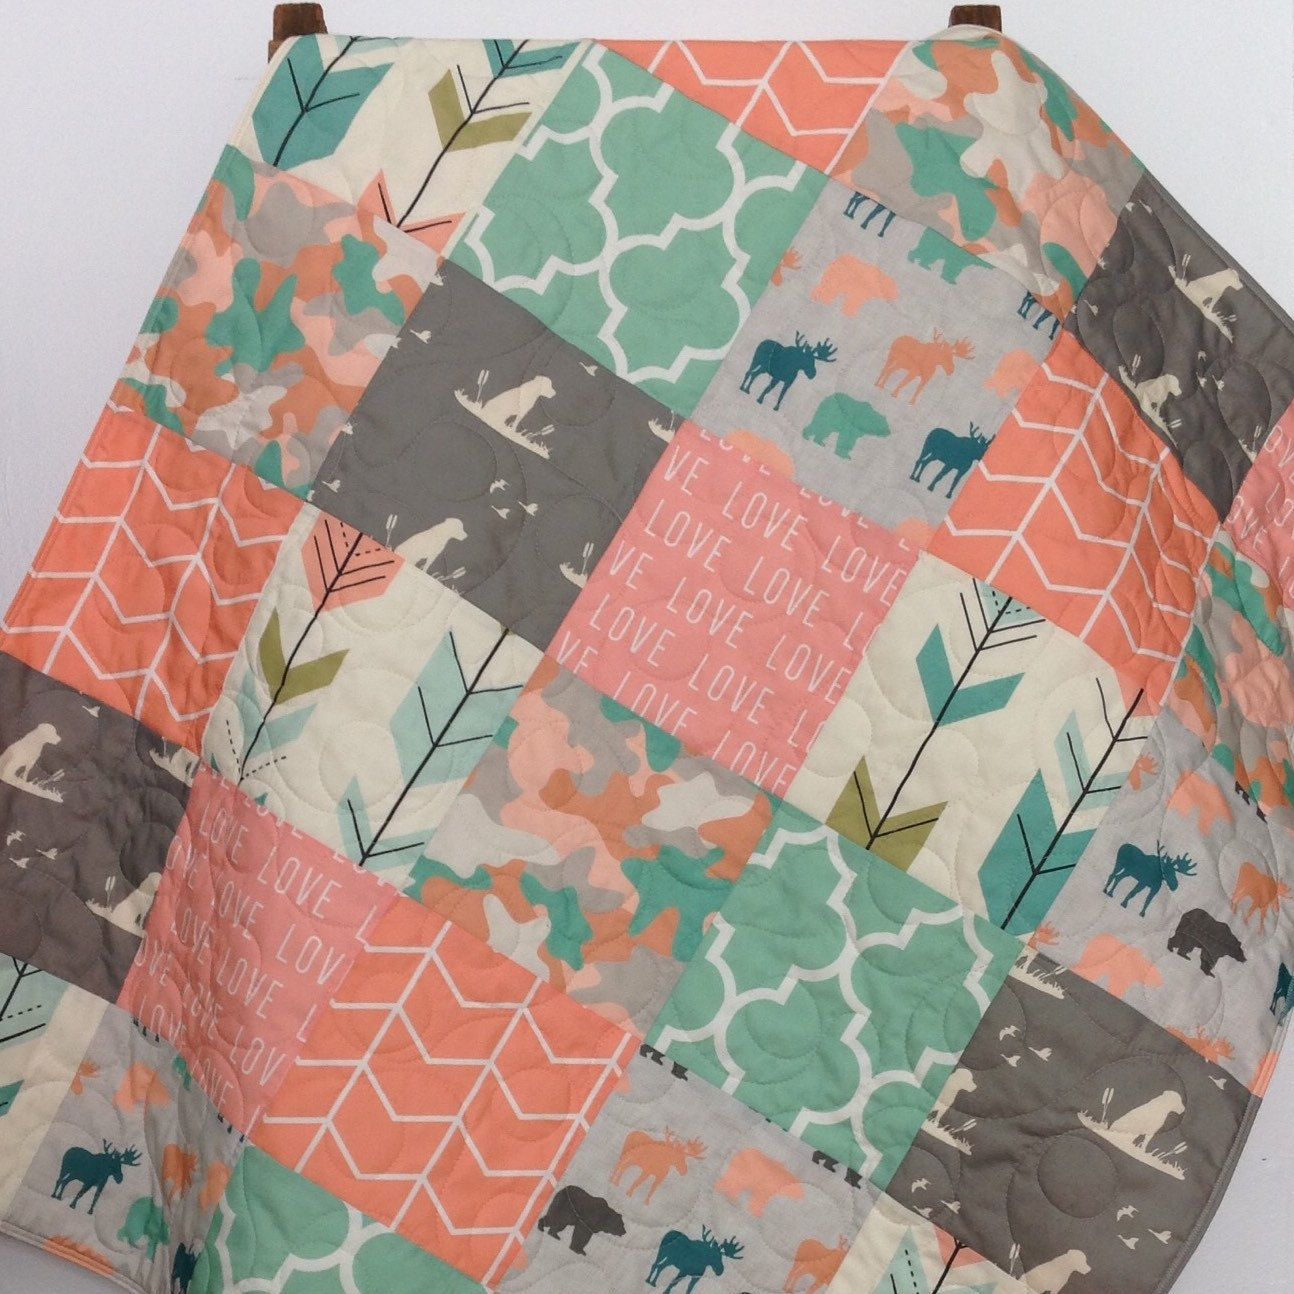 Baby Quilt, Girl, Moose, Bear, Dog, Woodland, Camo, Arrows, Gray, Mint,  Coral, Teal, Gray, Crib Bedding, Baby, Bed, Nursery, Children